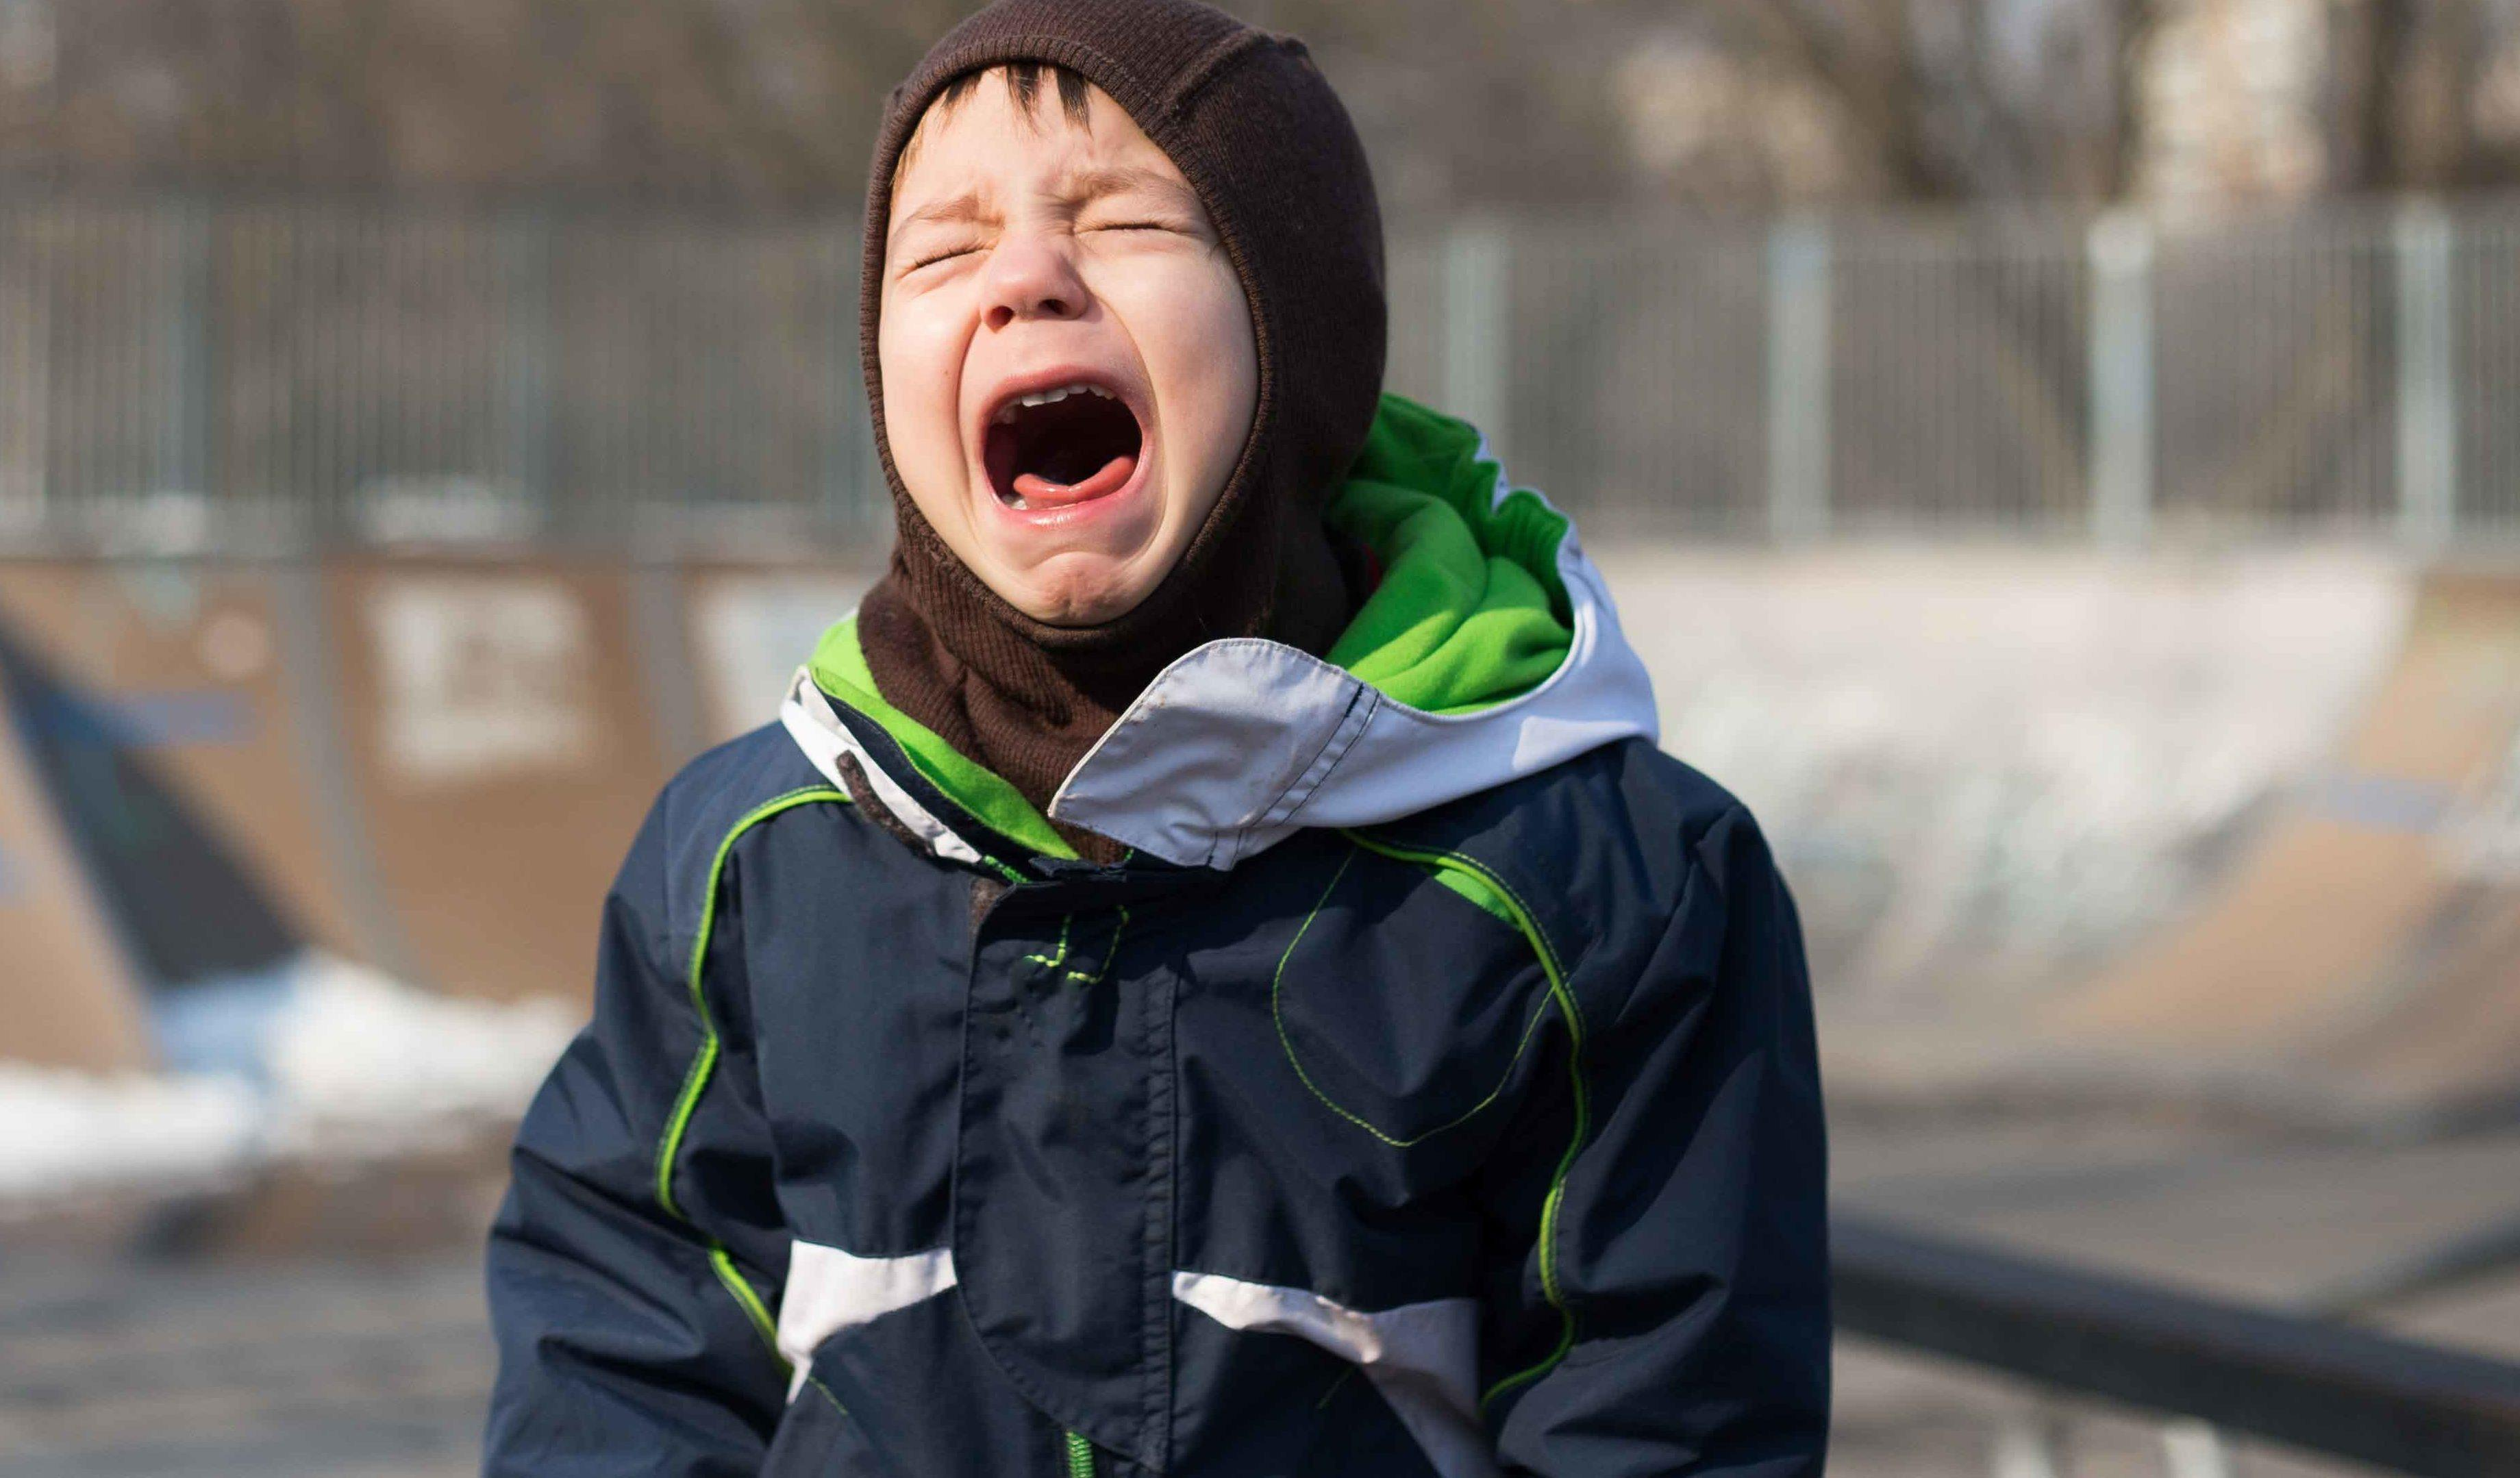 Why Do Foods Cause Tantrums or Mood Swings in Kids?